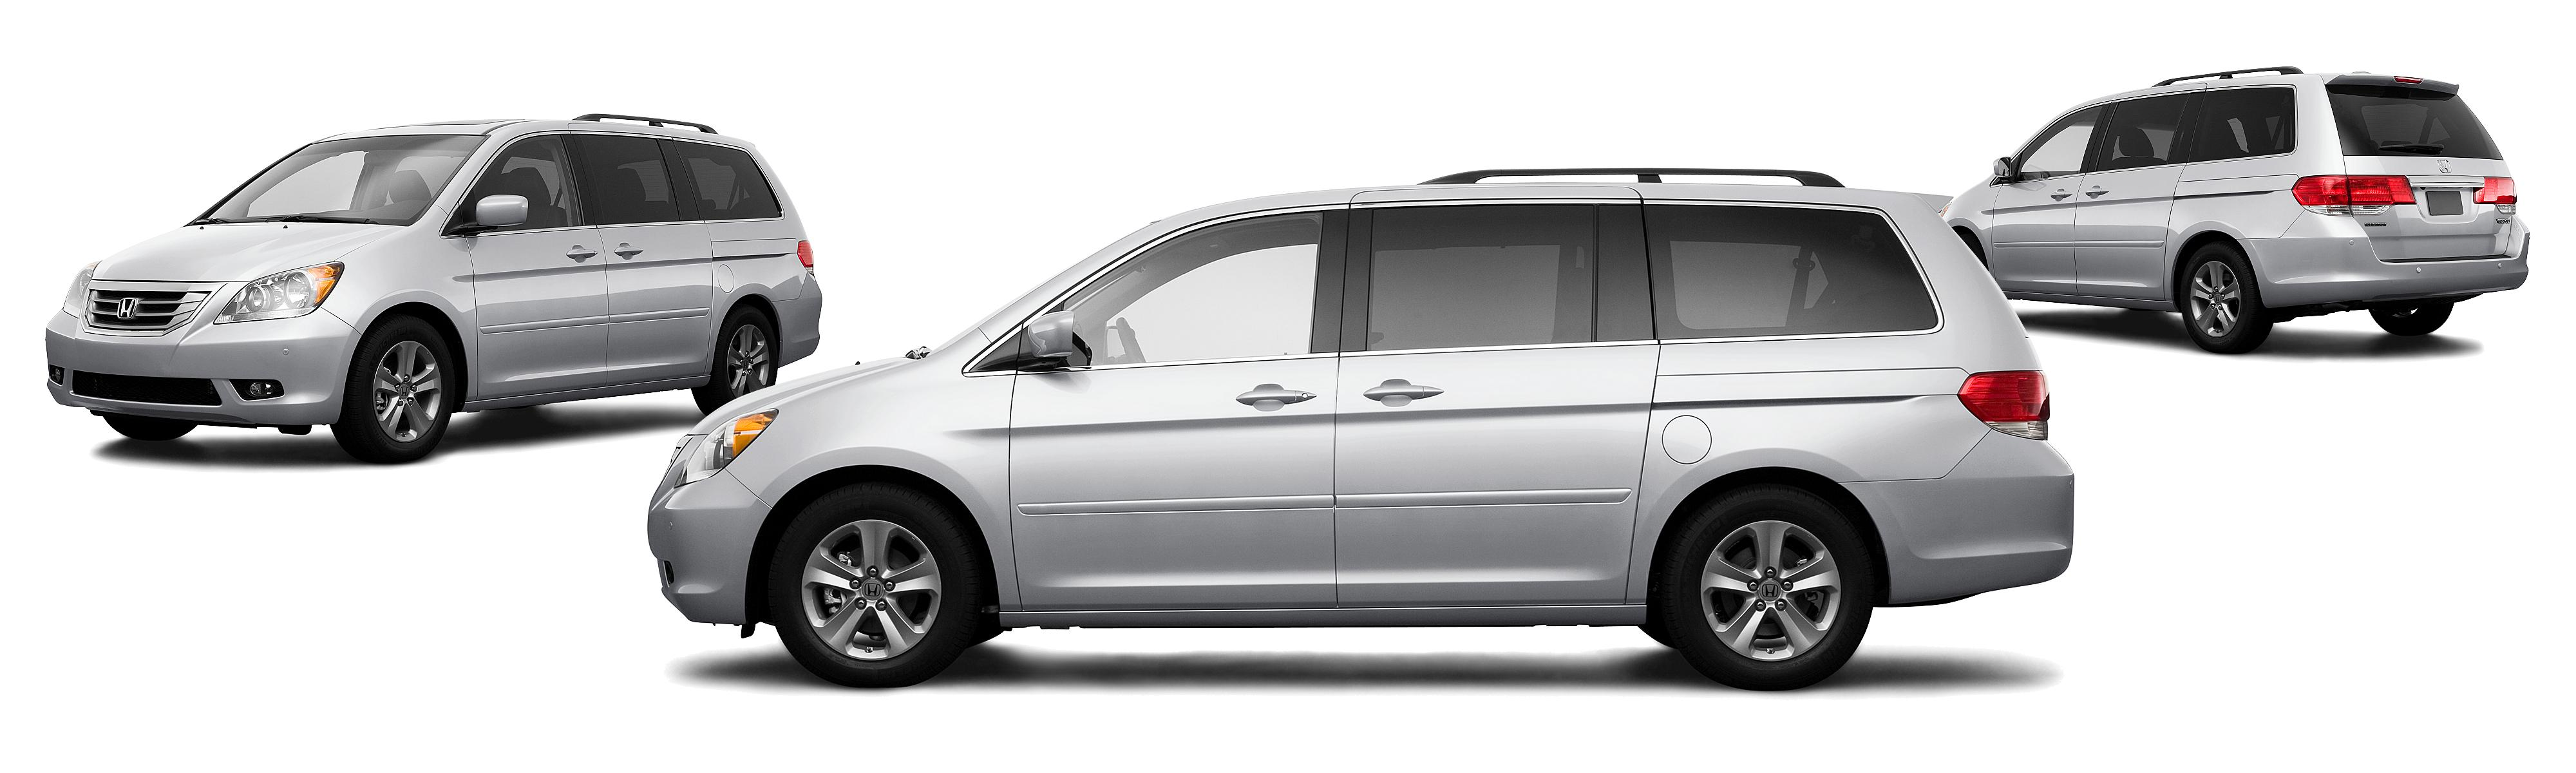 2009 Honda Odyssey Touring 4dr Mini-Van w/PAX - Research